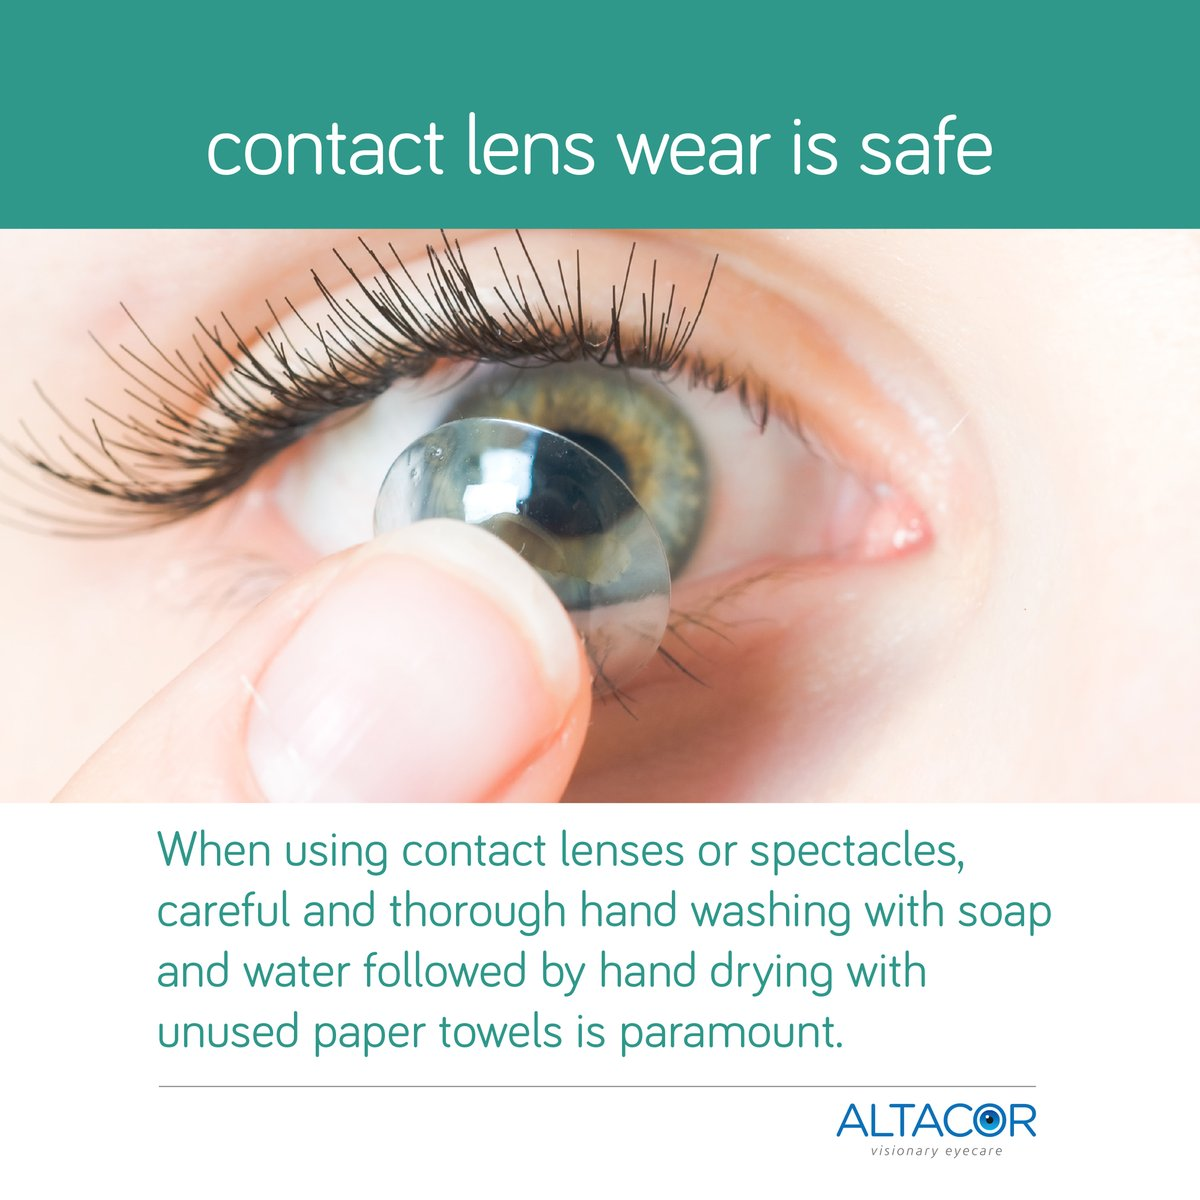 #washyourhands #altacor #eyecare #eyehealth #vision #stayclean #contactlens #contactlenses #dryeye